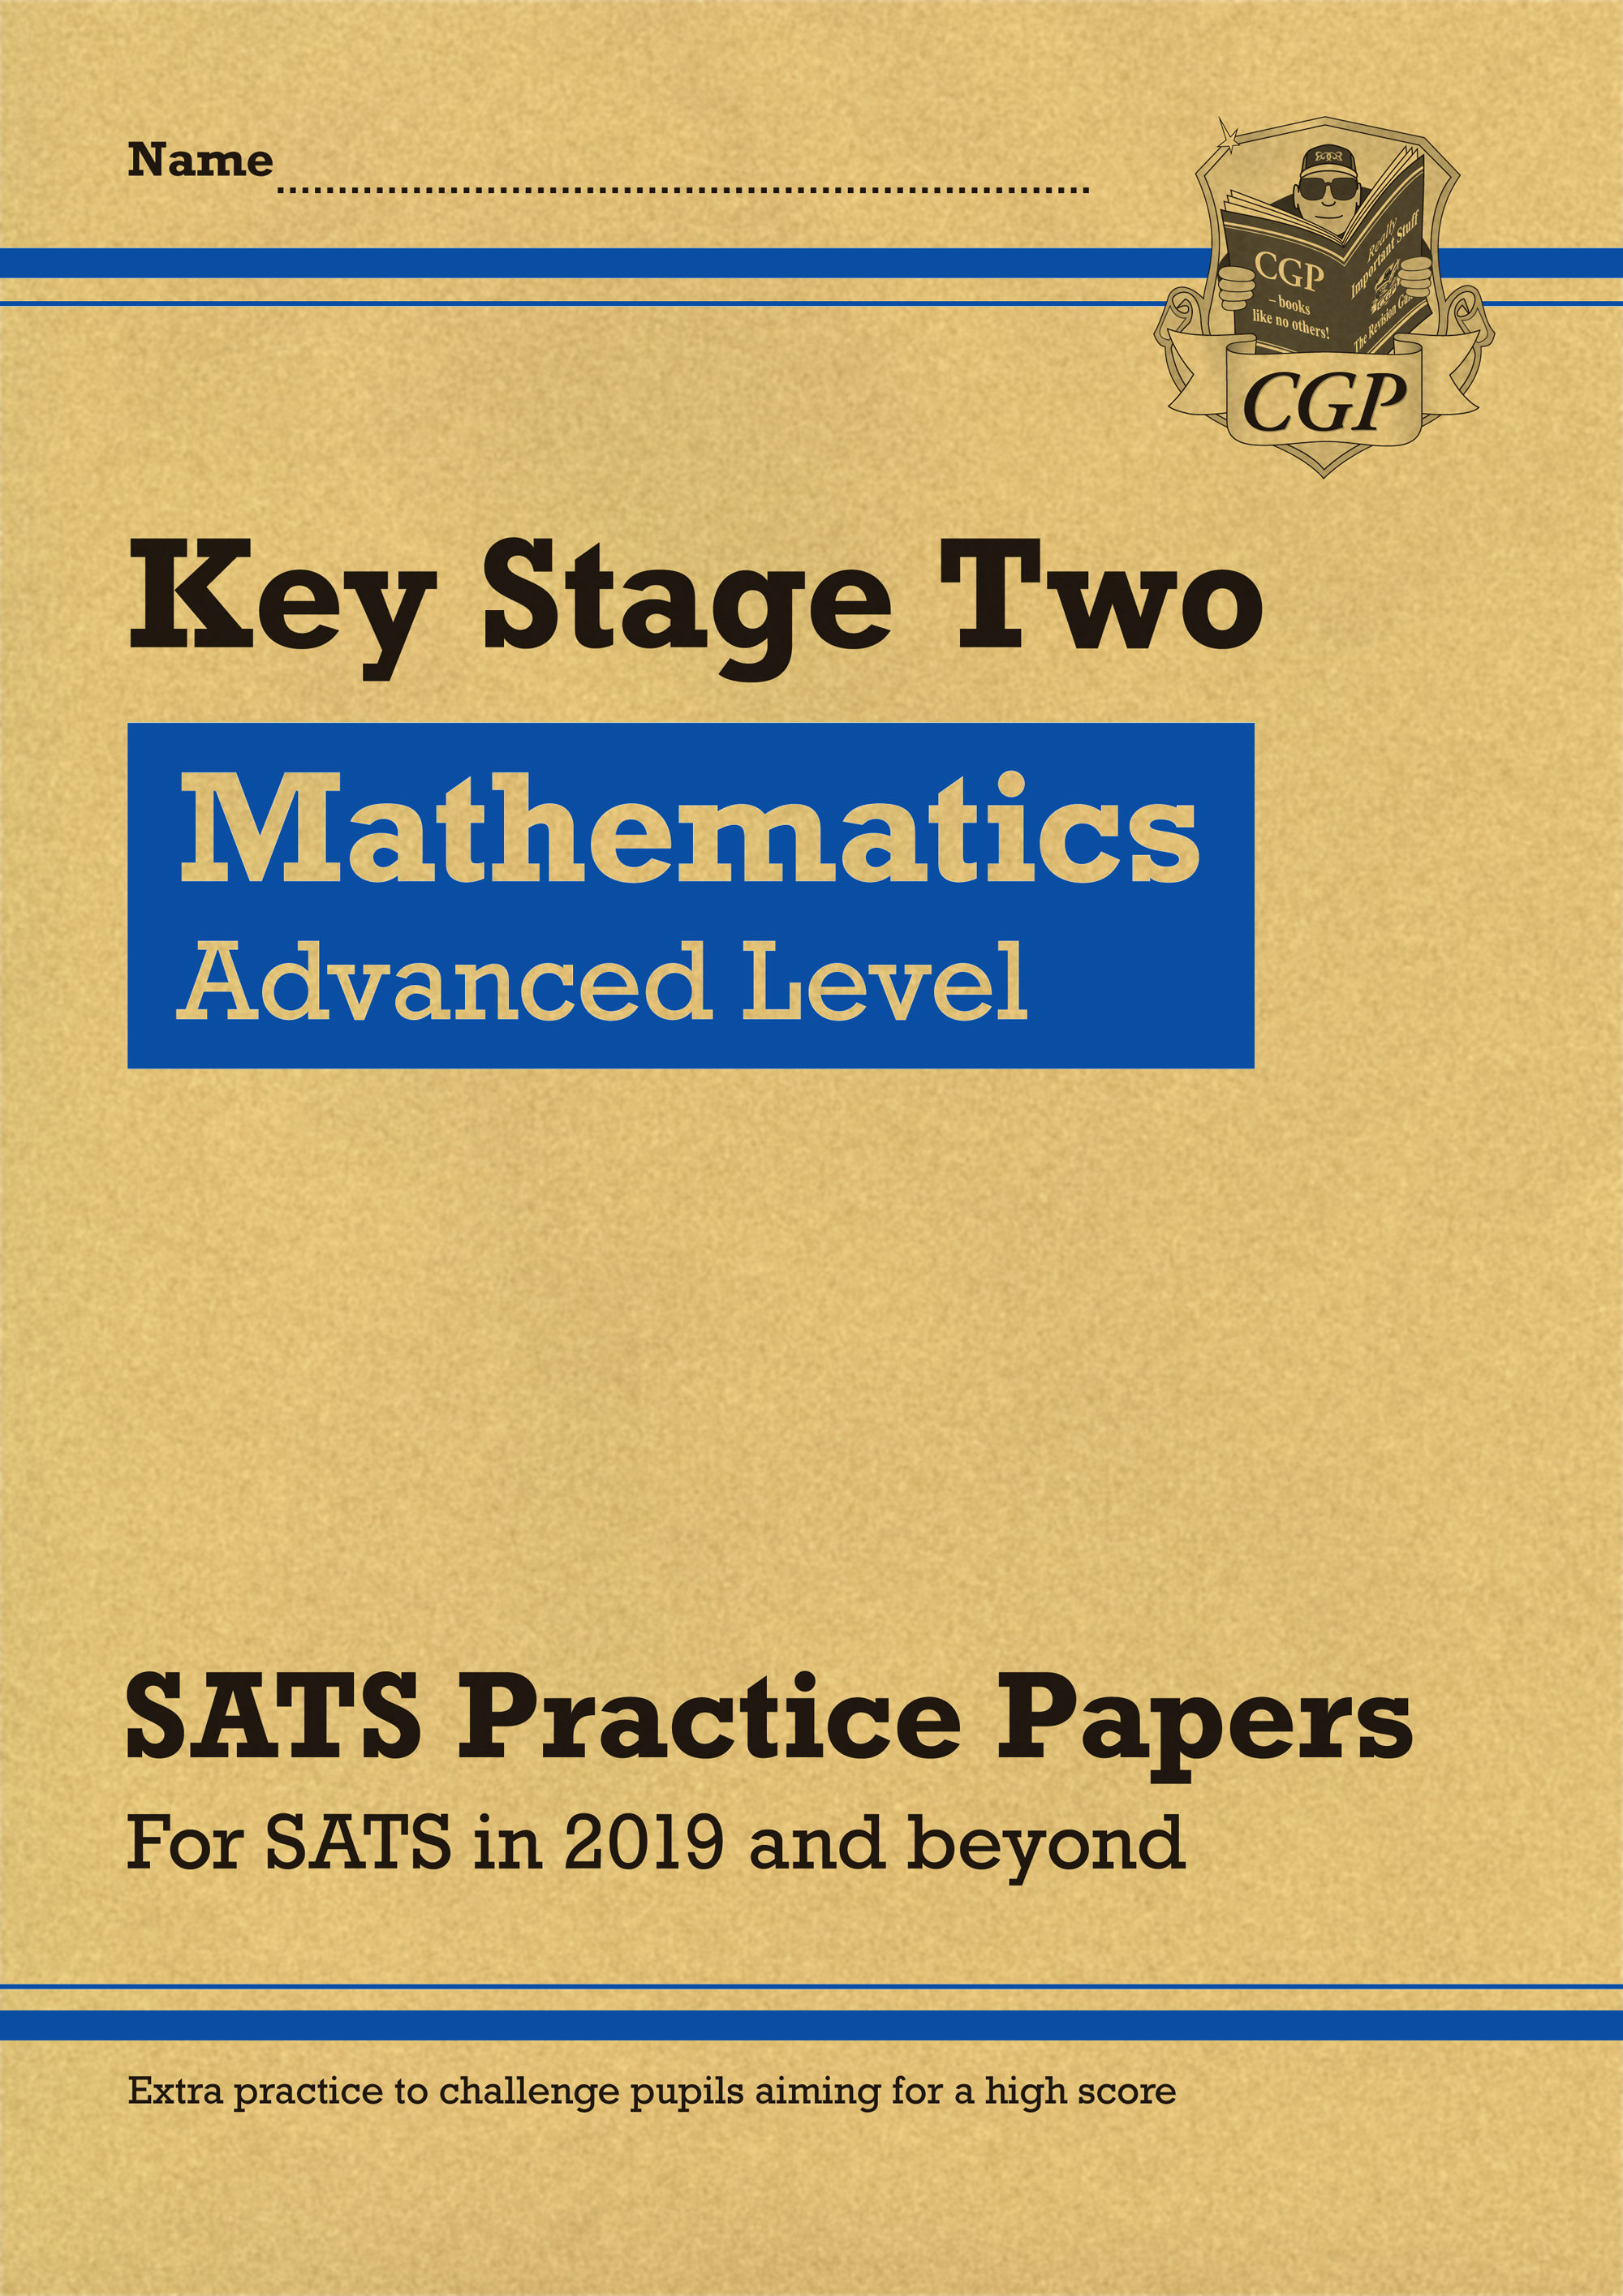 MLHP22 - New KS2 Maths Targeted SATS Practice Papers: Advanced Level (for the 2019 tests)